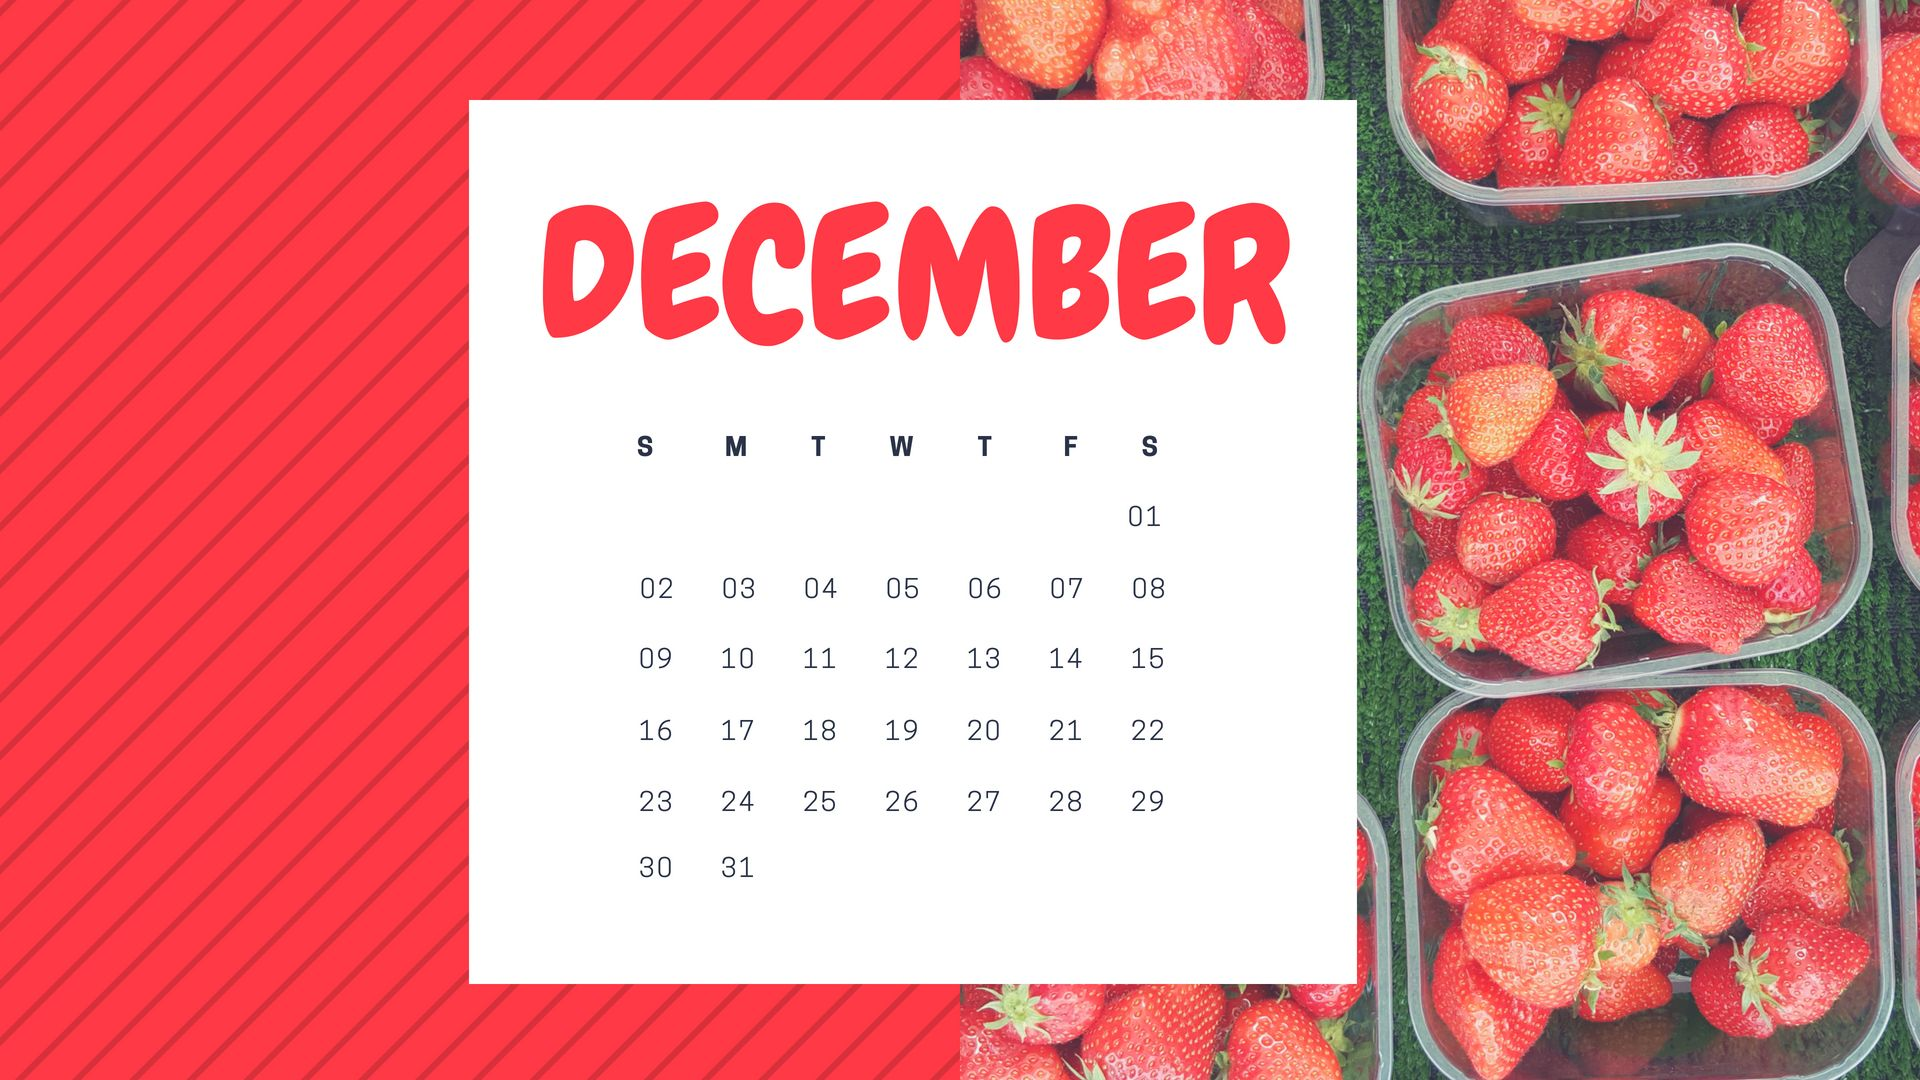 December 2018 Desktop Calendar Wallpaper